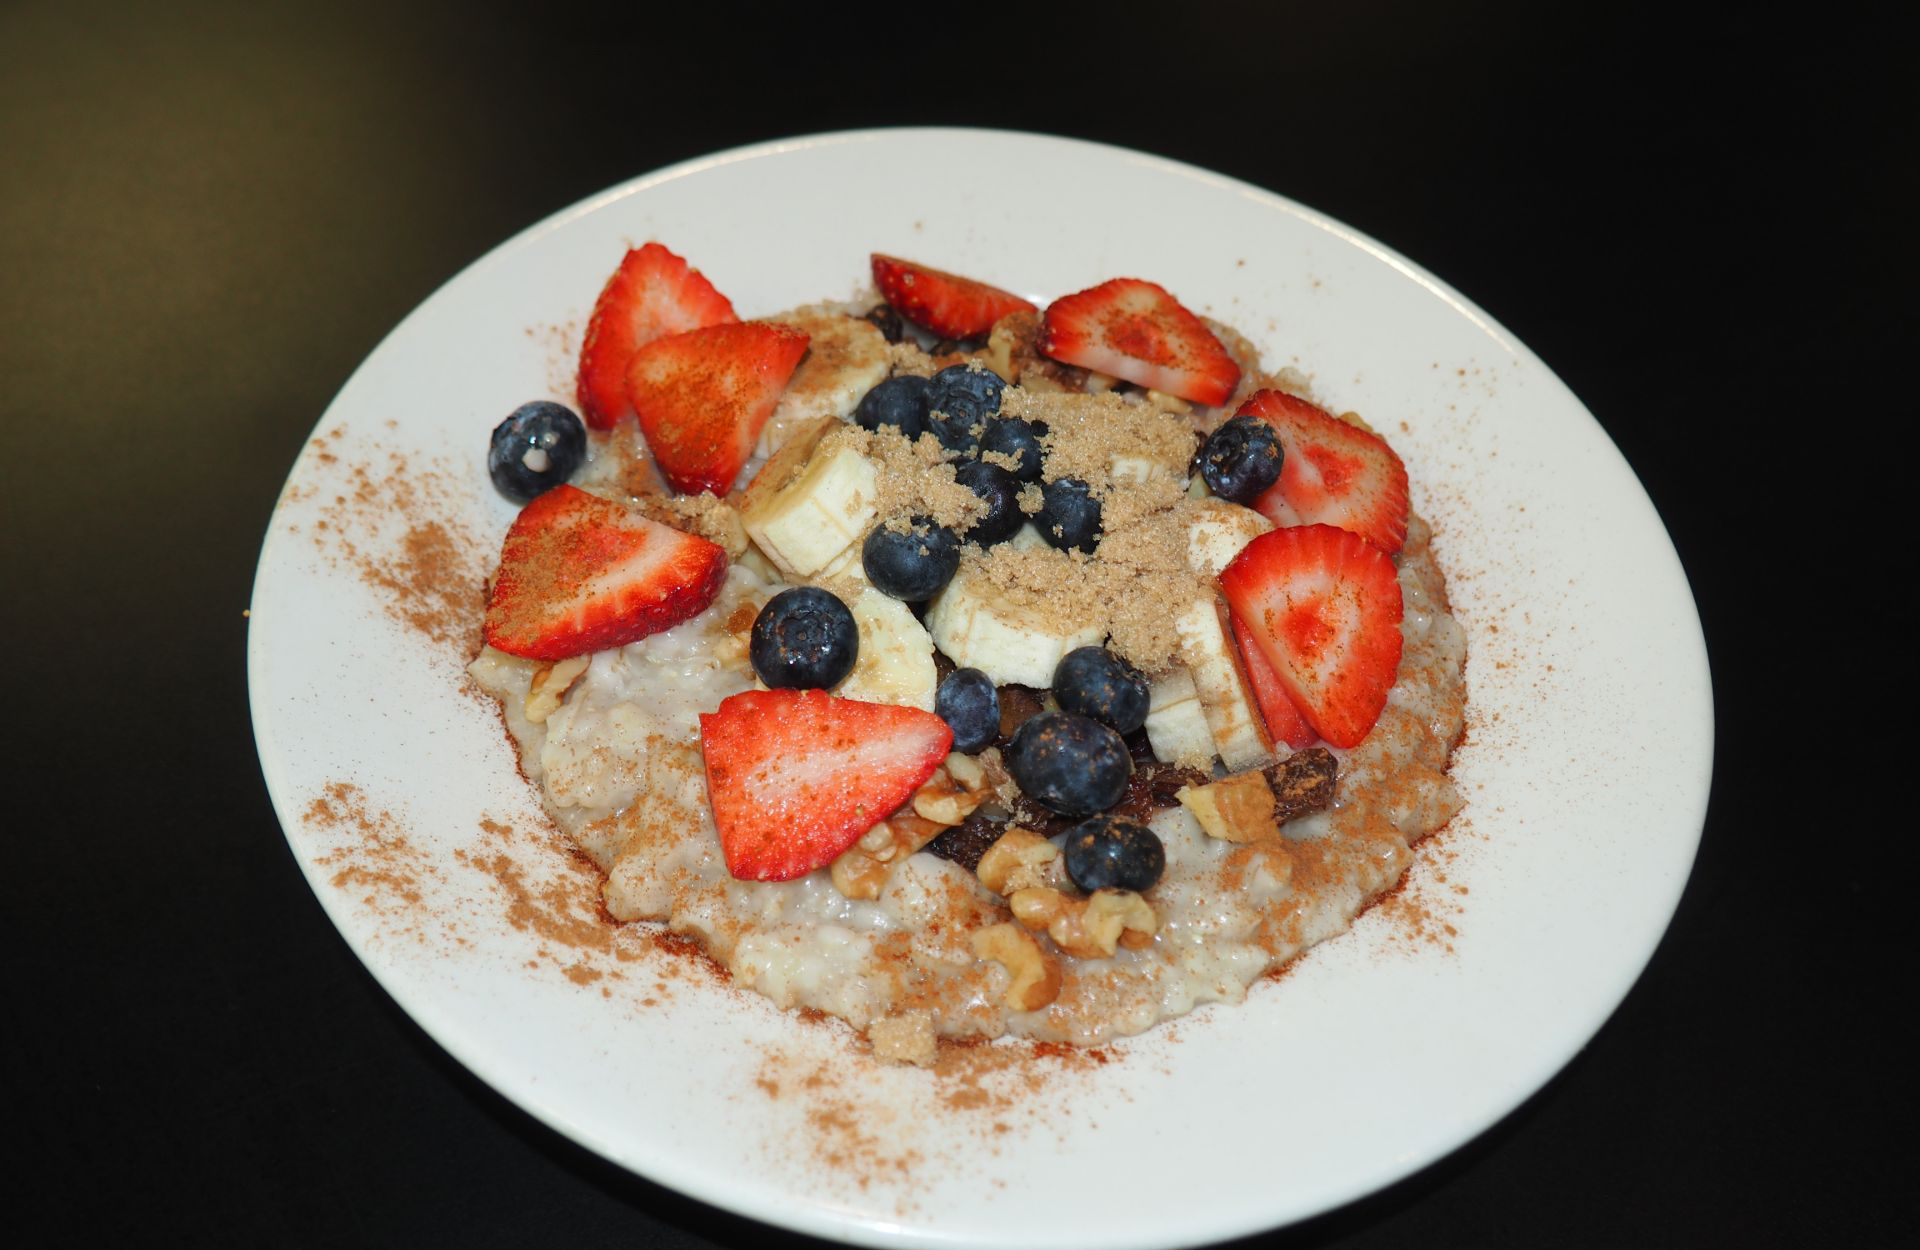 Oatmeal with strawberries, blueberries and bananas with cashews and cinnamon